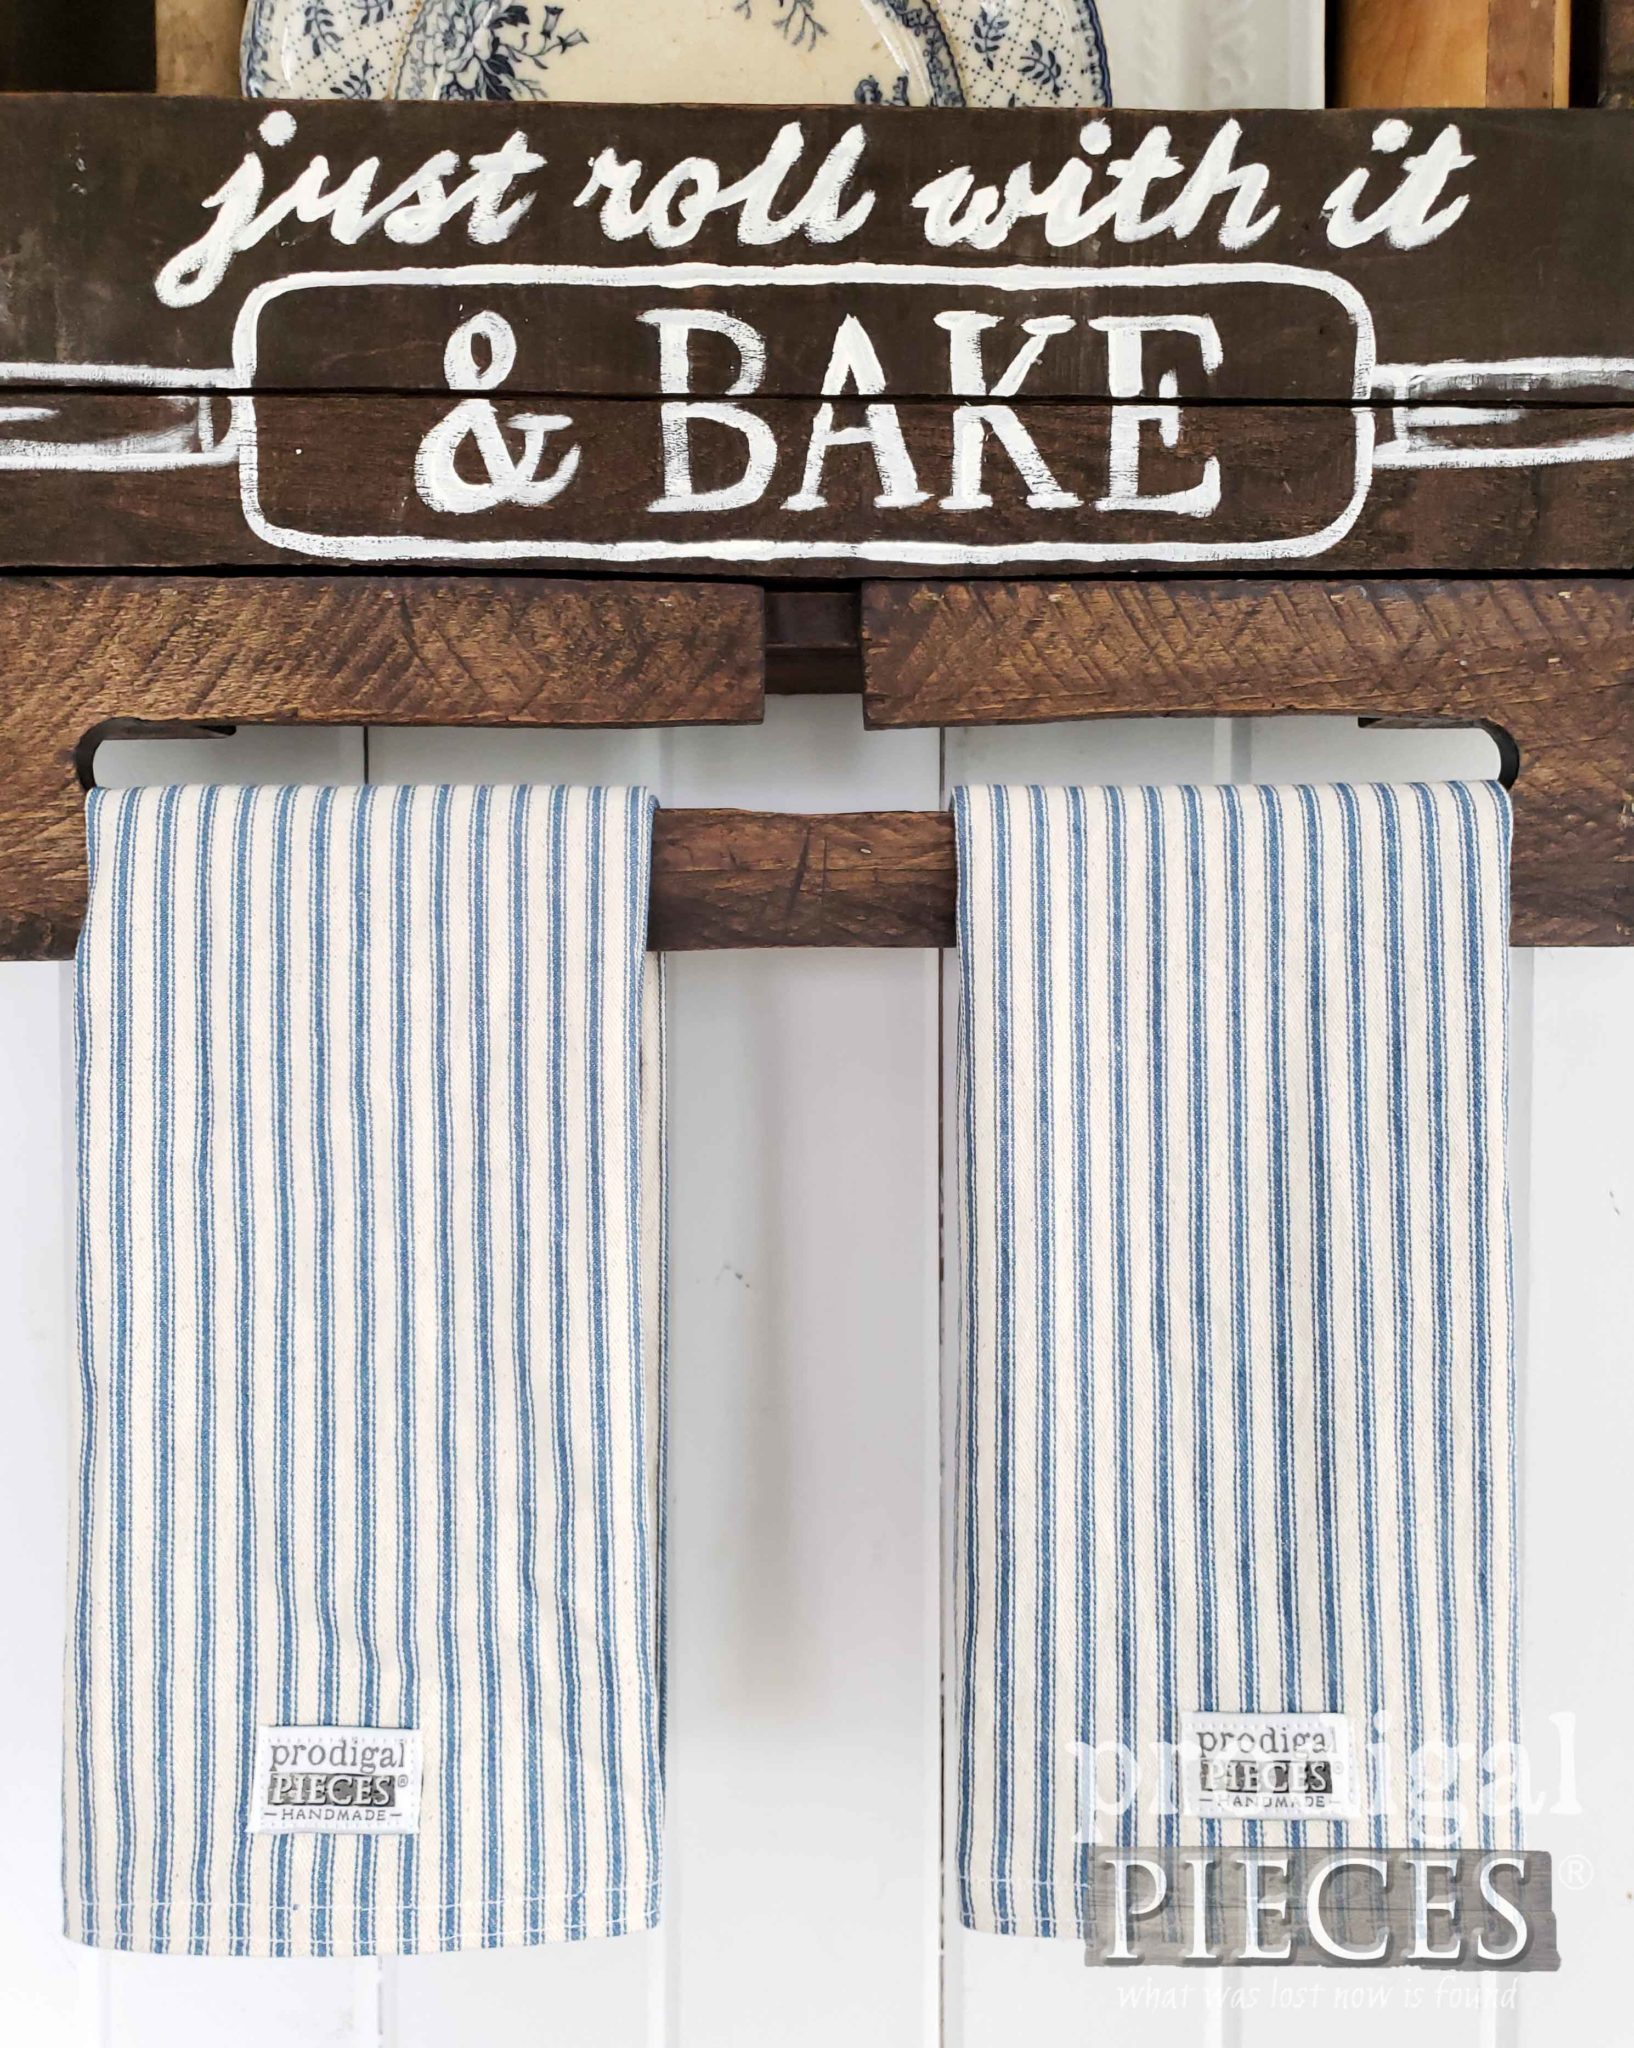 Handmade Farmhouse Ticking Stripe Kitchen Towels in Blue | by Larissa of Prodigal Pieces | prodigalpieces.com #prodigalpieces #diy #handmade #farmhouse #kitchen #home #homedecor #shopping